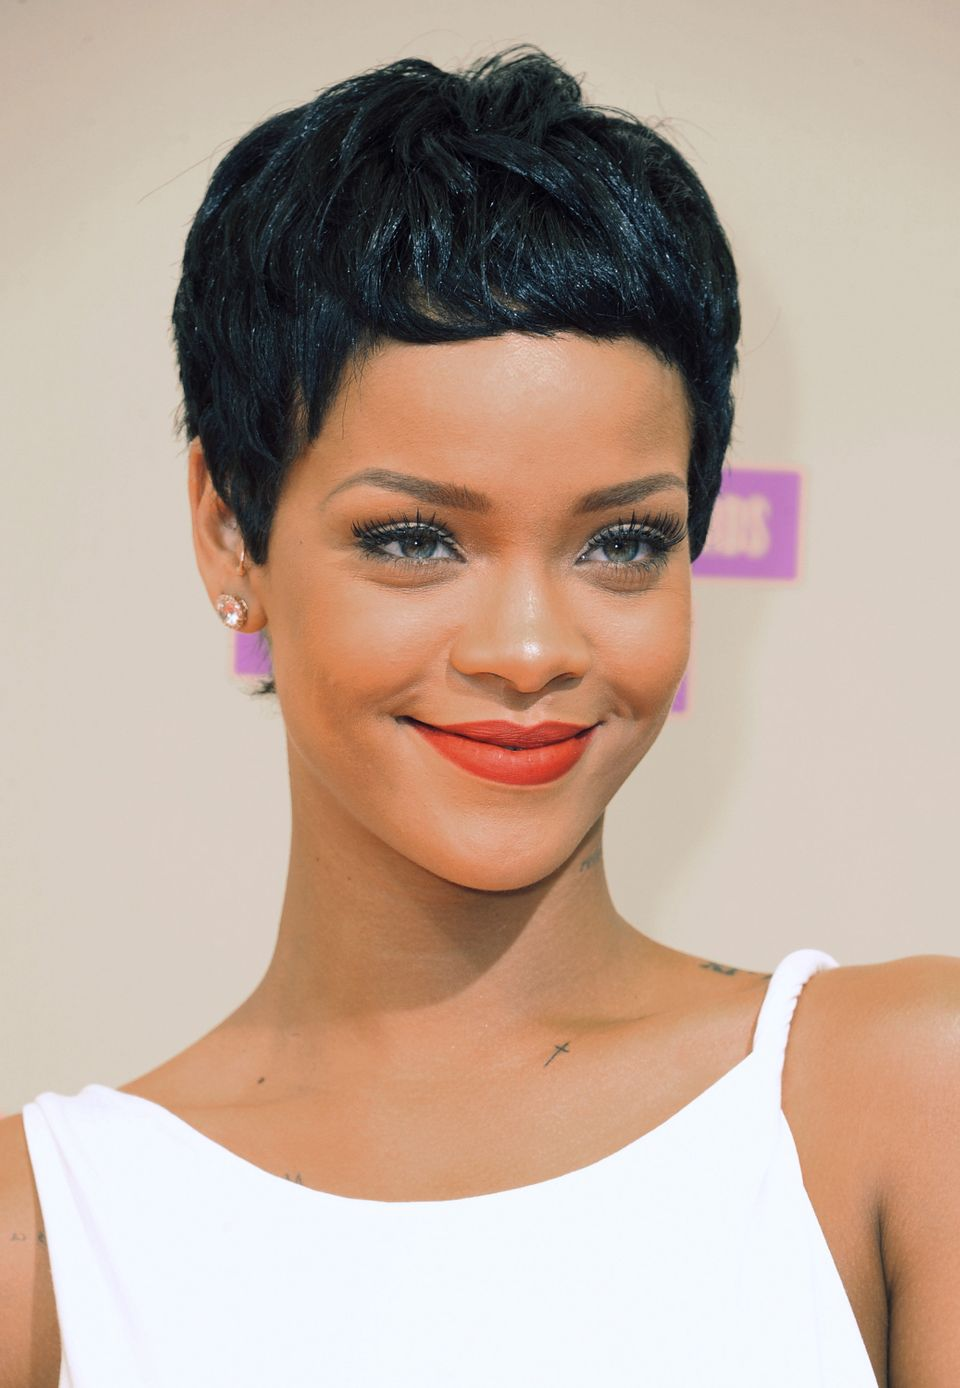 20 Pixie Haircuts That Make Us Want To Chop Off Our Hair Huffpost Life